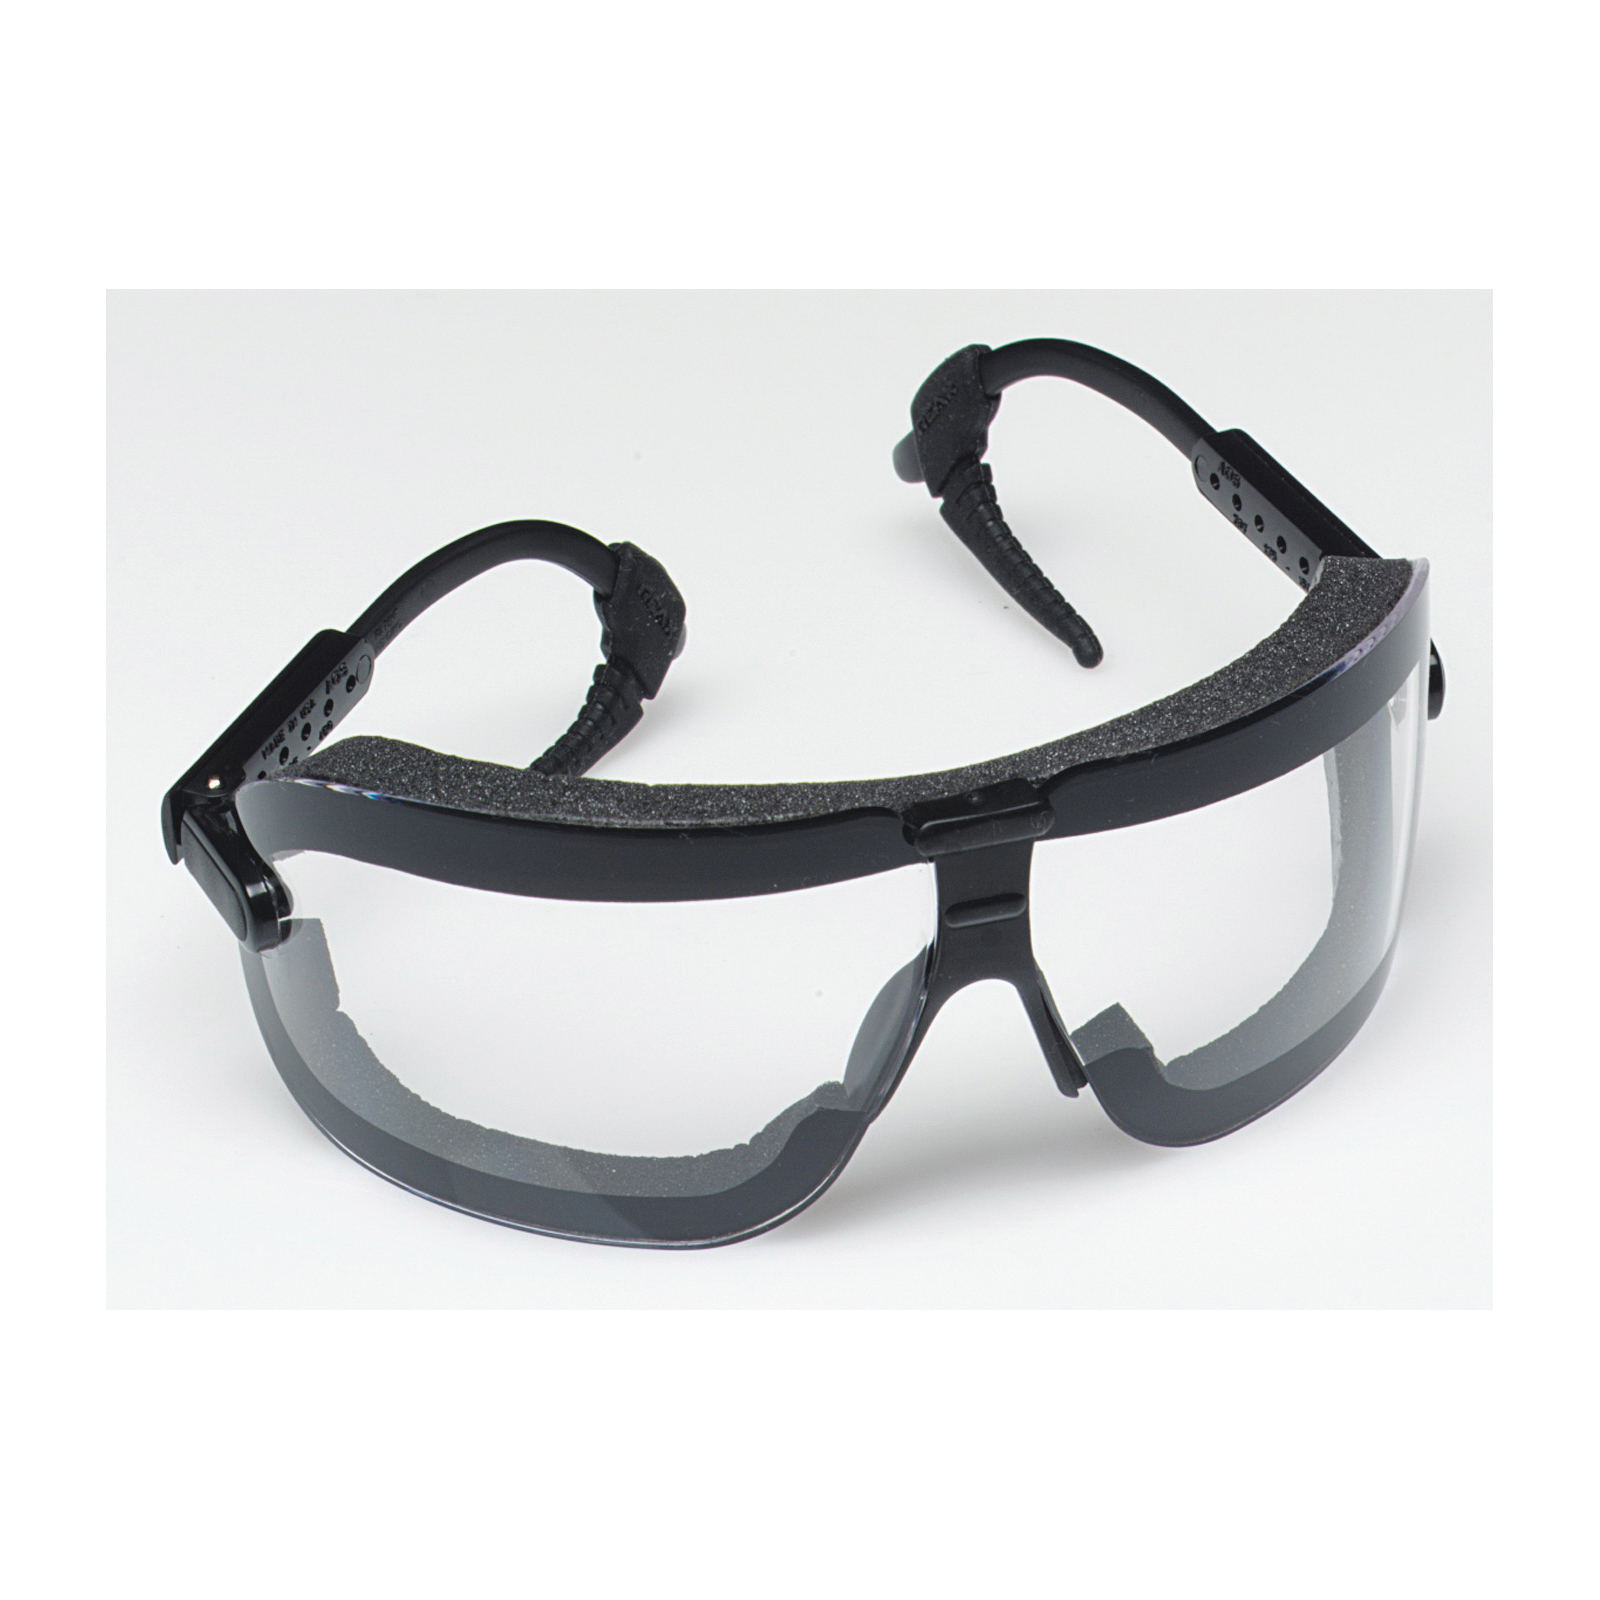 3M™ Fectoggles™ 078371-62325 Protective Safety Goggles With Black Temple, Anti-Fog/Anti-Scratch Clear Polycarbonate Lens, 99.9 % UV Protection, Elastic Strap, ANSI Z87.1-2010, CSA Z94.3-2007